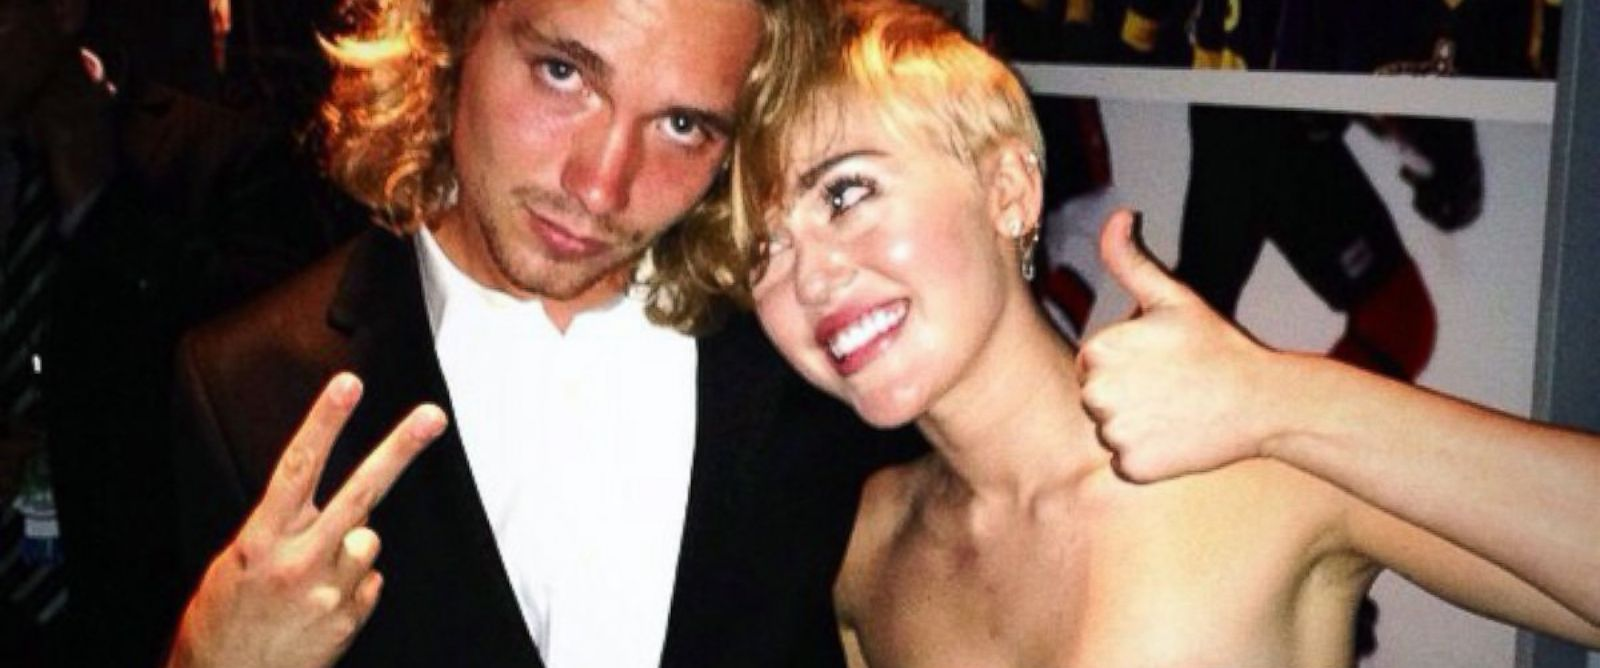 "PHOTO: Miley Cyrus posted this photo to Instagram, Aug. 24, 2014, with the caption, ""#myfriendsplace #VMAs2014 #mtv."""